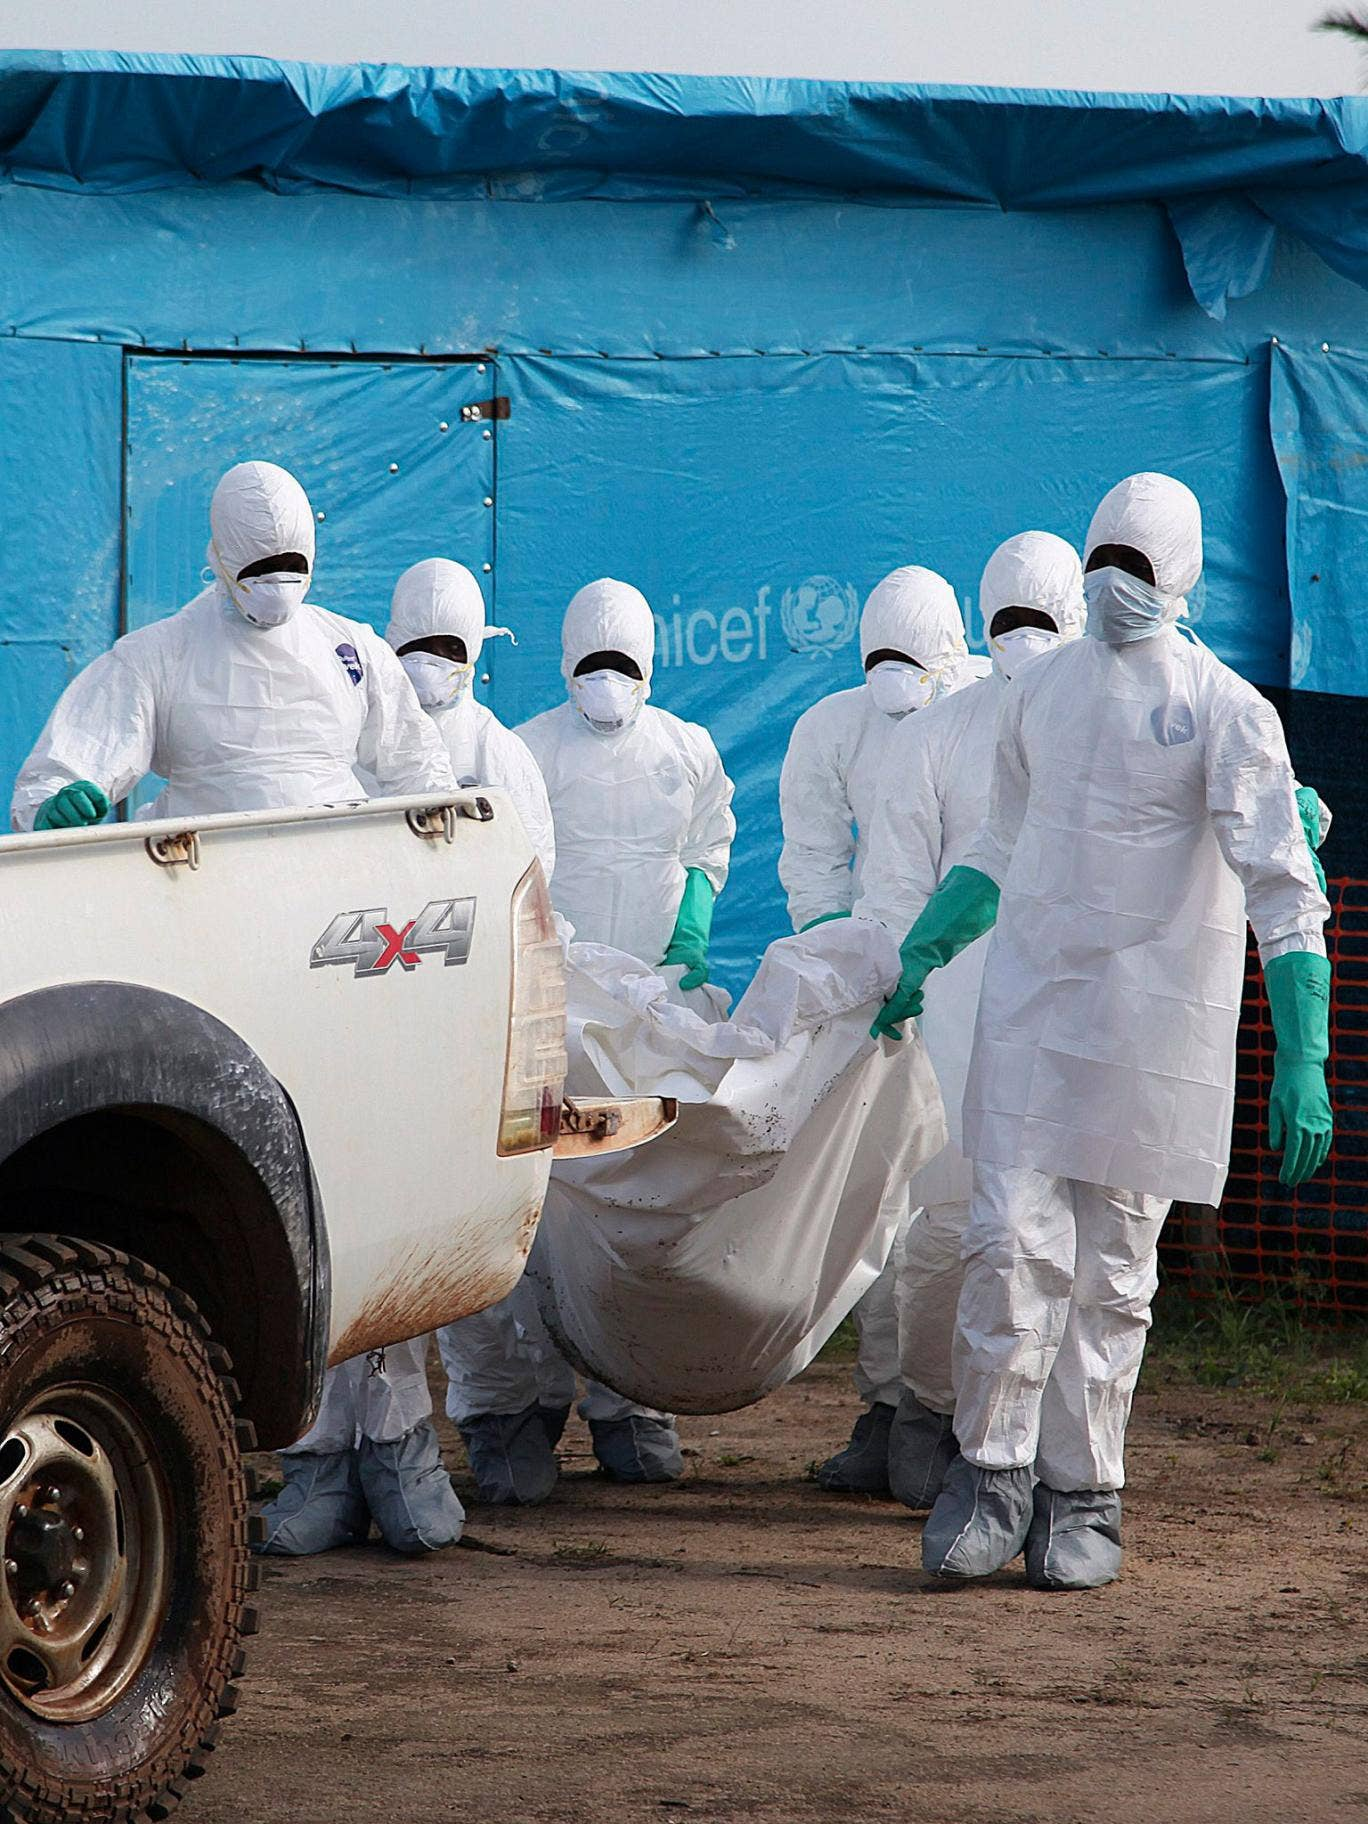 Across Guinea, Liberia and Sierra Leone at least 660 people have died from the worst outbreak yet of the haemorrhagic fever, the World Health Organisation (WHO) said